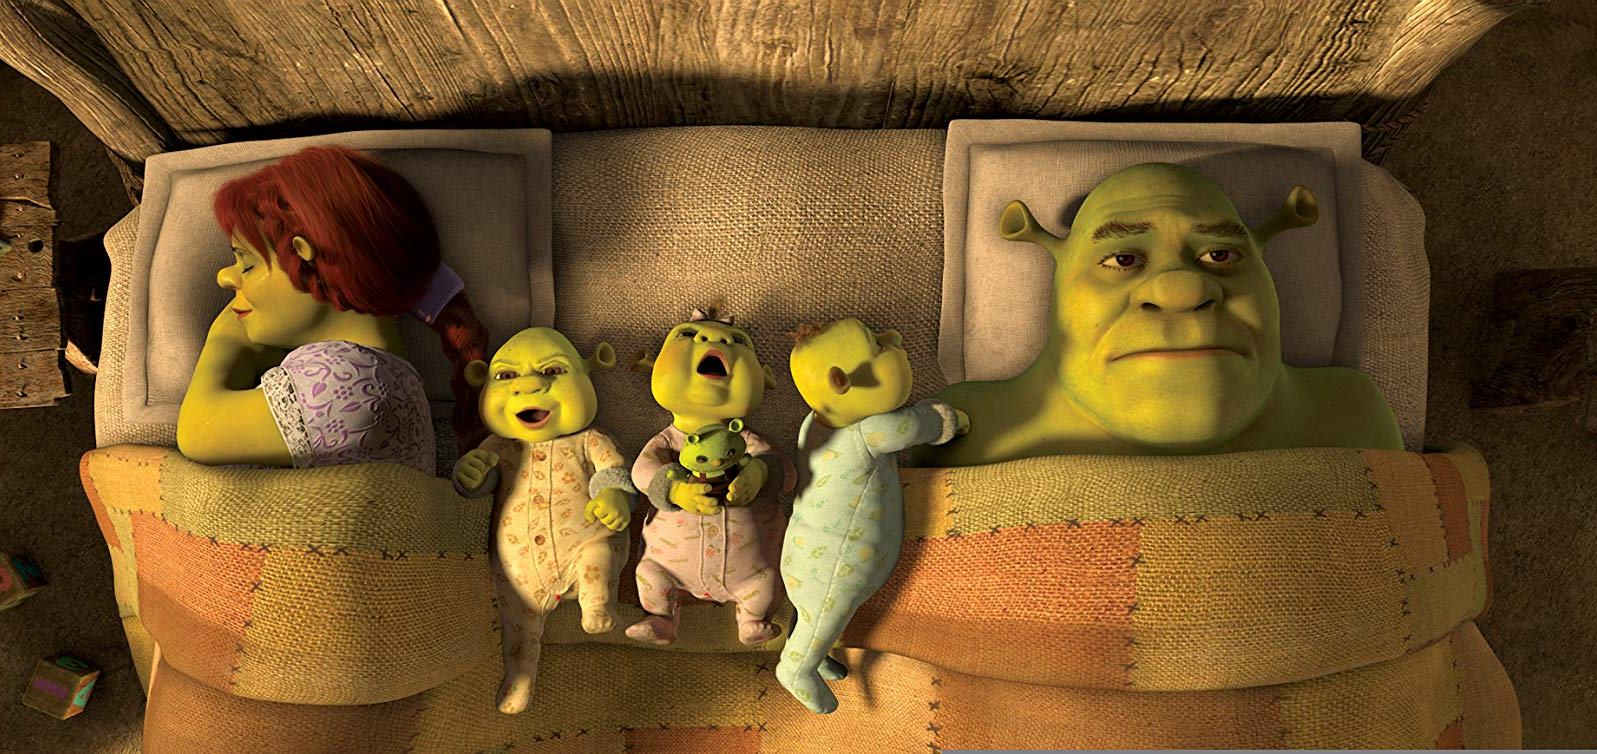 Shrek feels unhappy with the settled down domestic life in Shrek Forever After (2010)